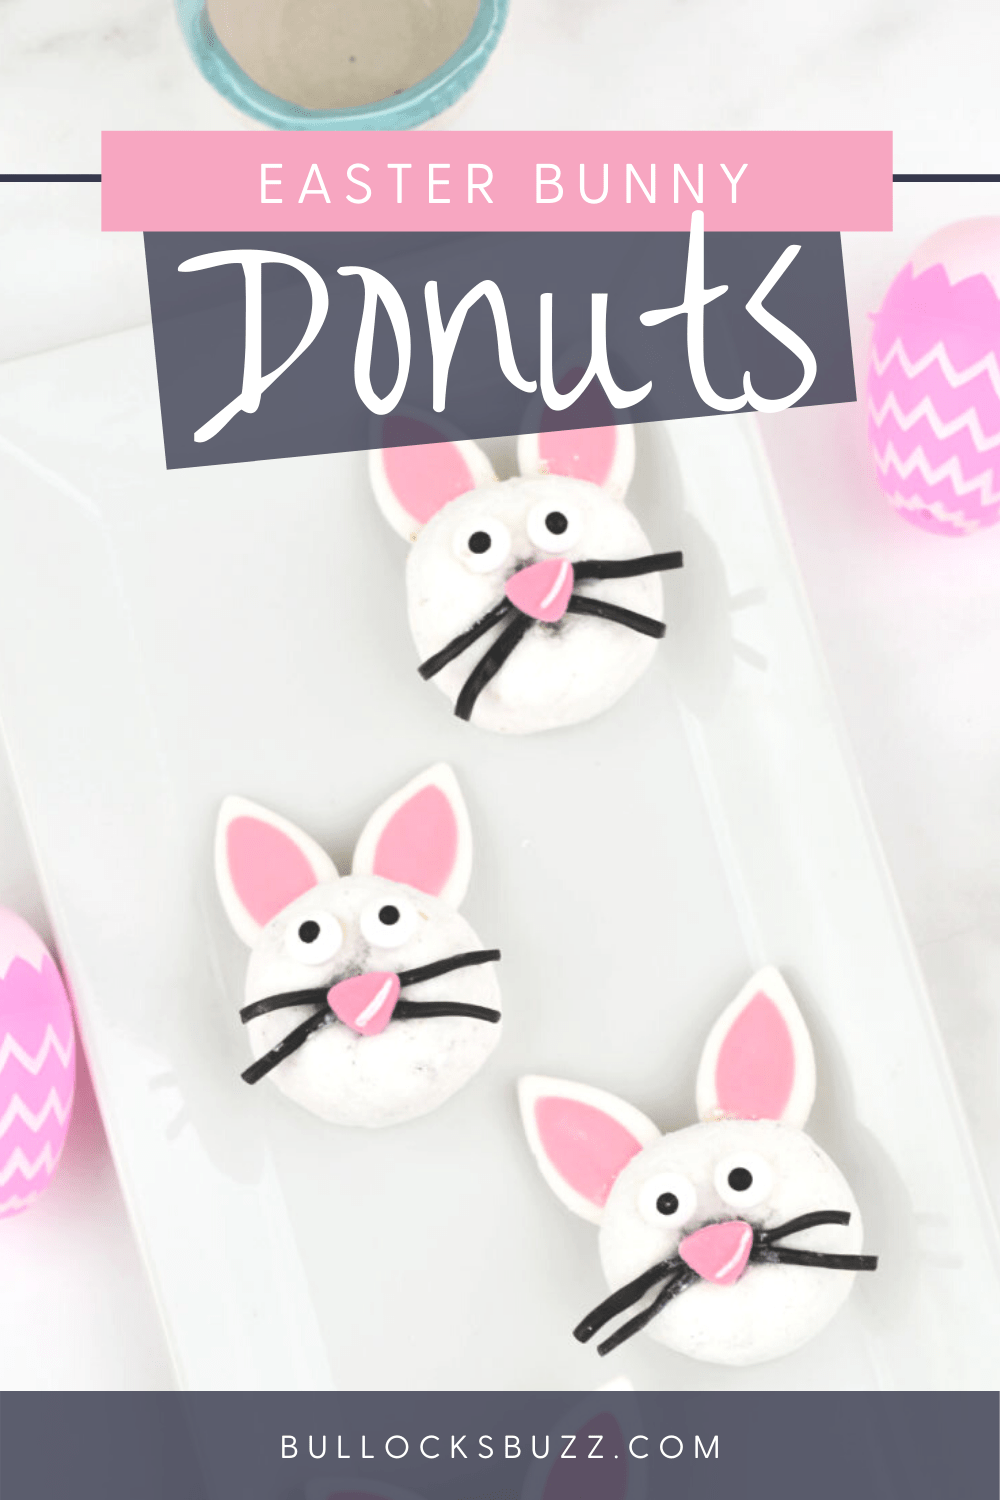 Easter Bunny Donuts are an easy no-bake Easter dessert that everyone will love! Delicious white powdered donuts are topped with adorable bunny ears and faces in this fun recipe that doubles as Easter dessert table decor.